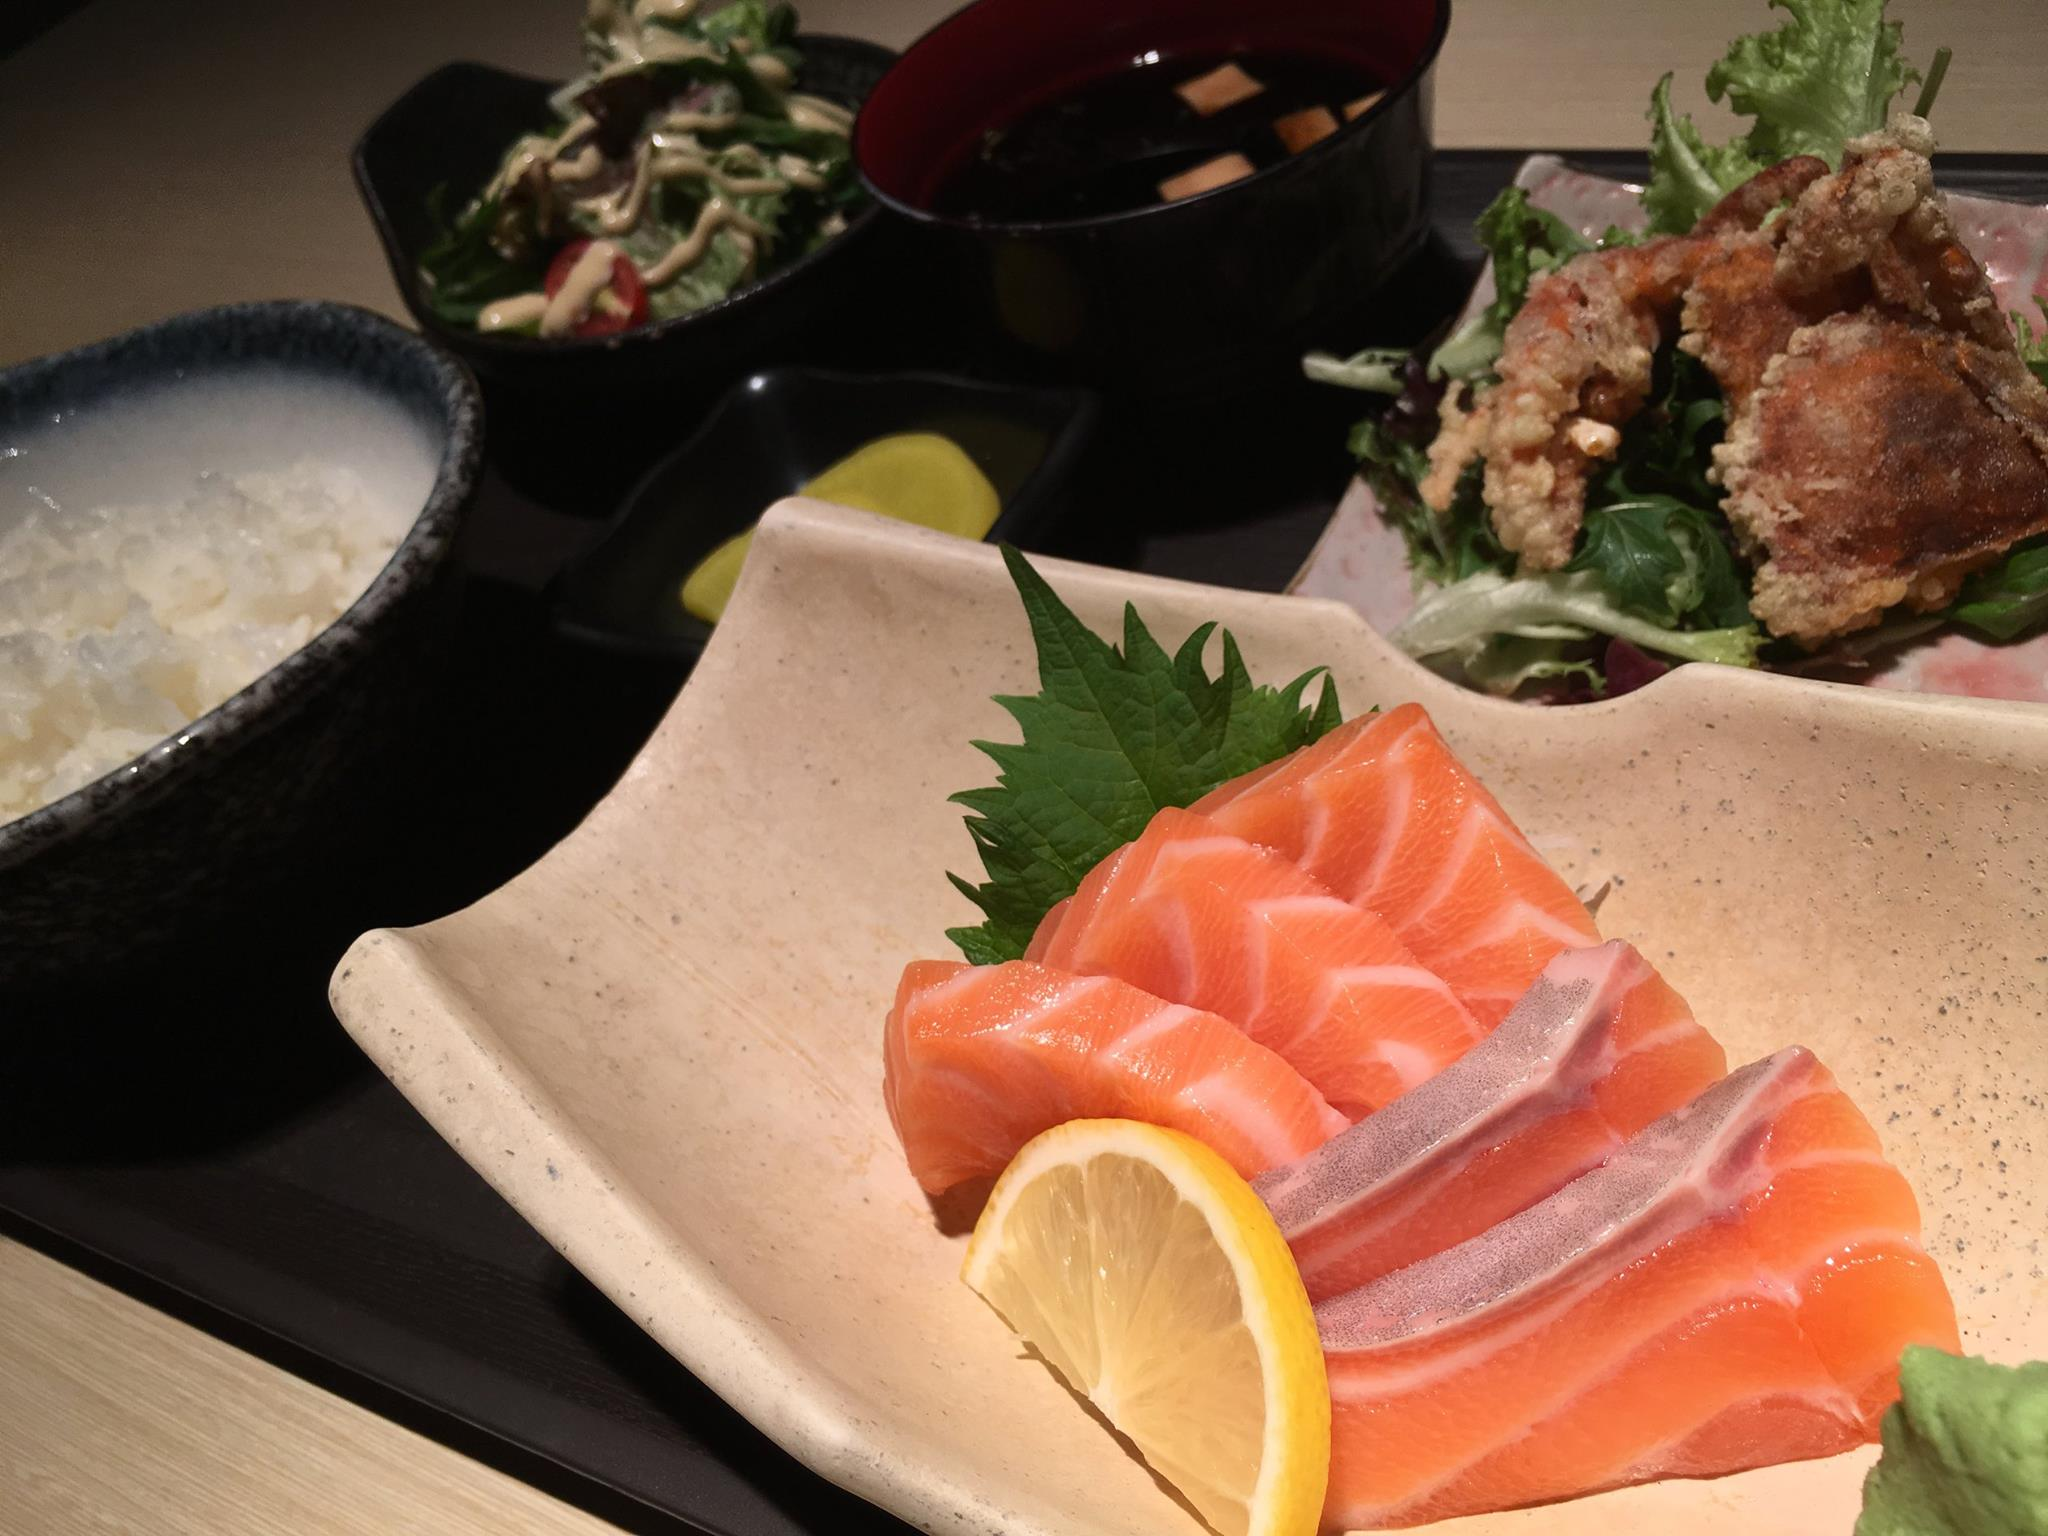 The delicious food at Okinawa Dining attracts a lot of people